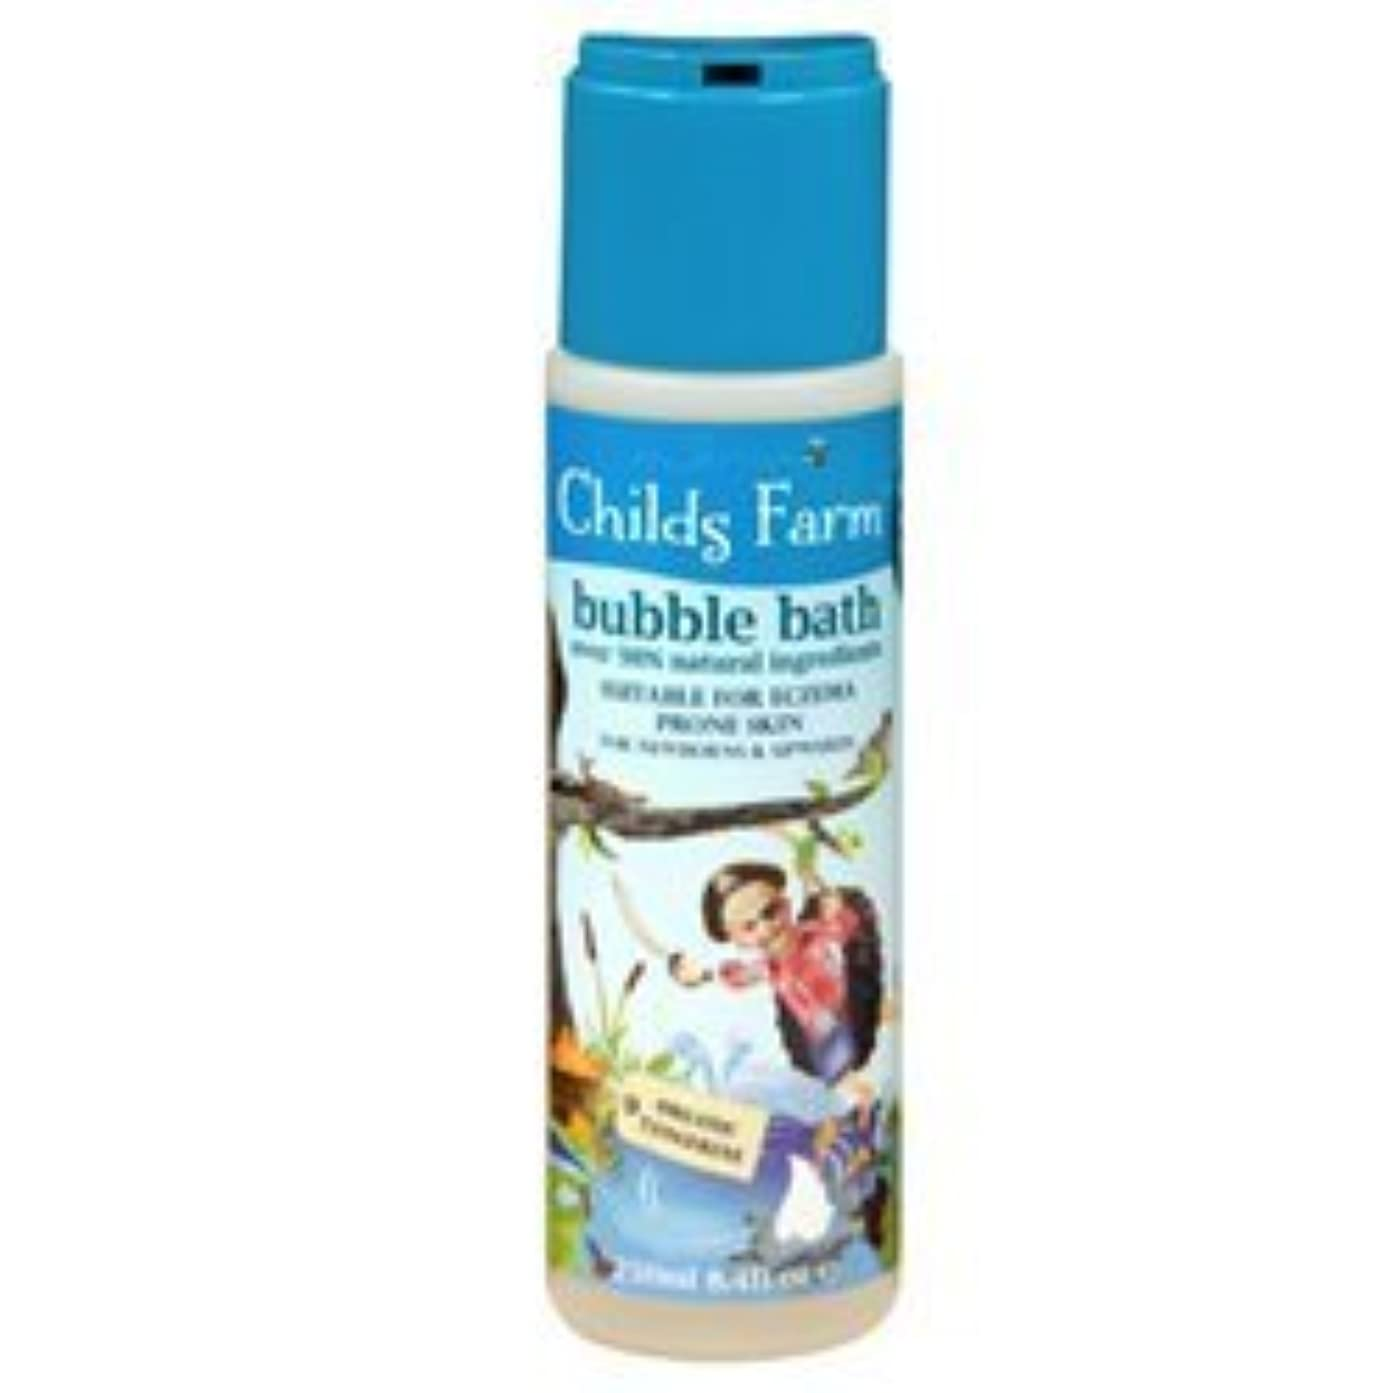 廃止栄光航空便Childs Farm Bubble bath for Buccaneers 250ml x 1 by Childs Farm [並行輸入品]